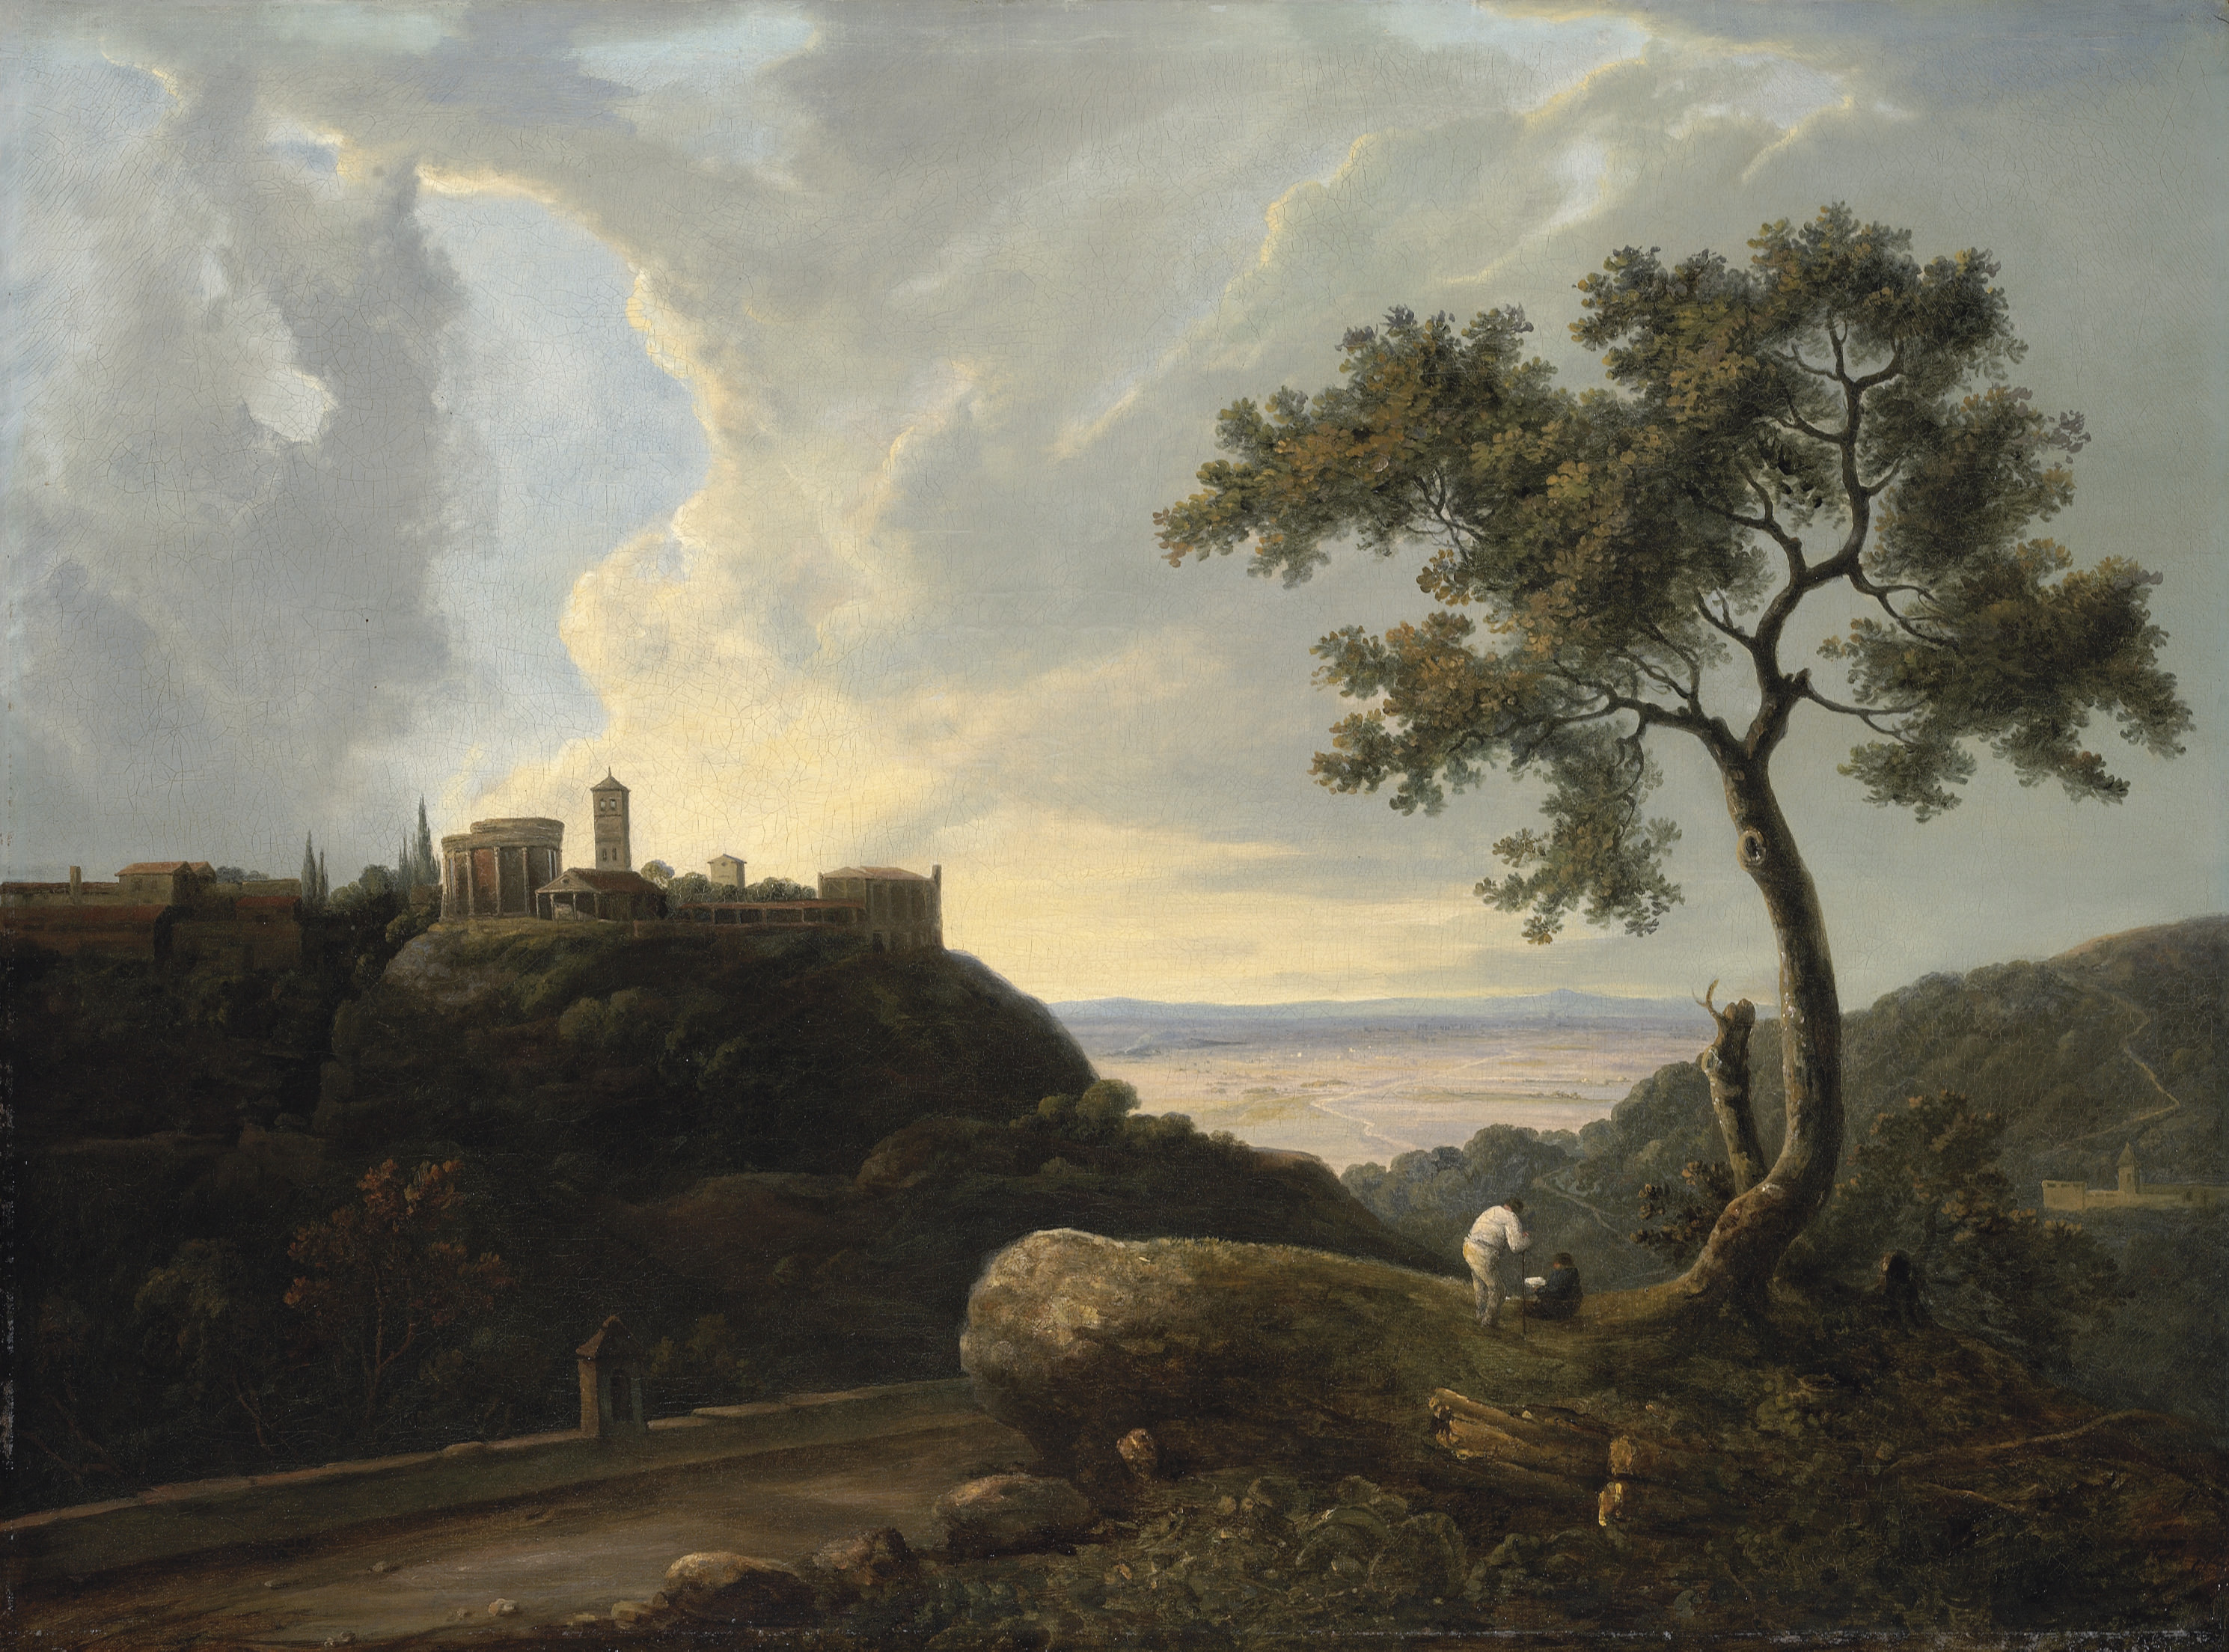 An extensive classical landscape with an artist sketching the Temple of the Sibyl and the Temple of Tiburtius, Tivoli